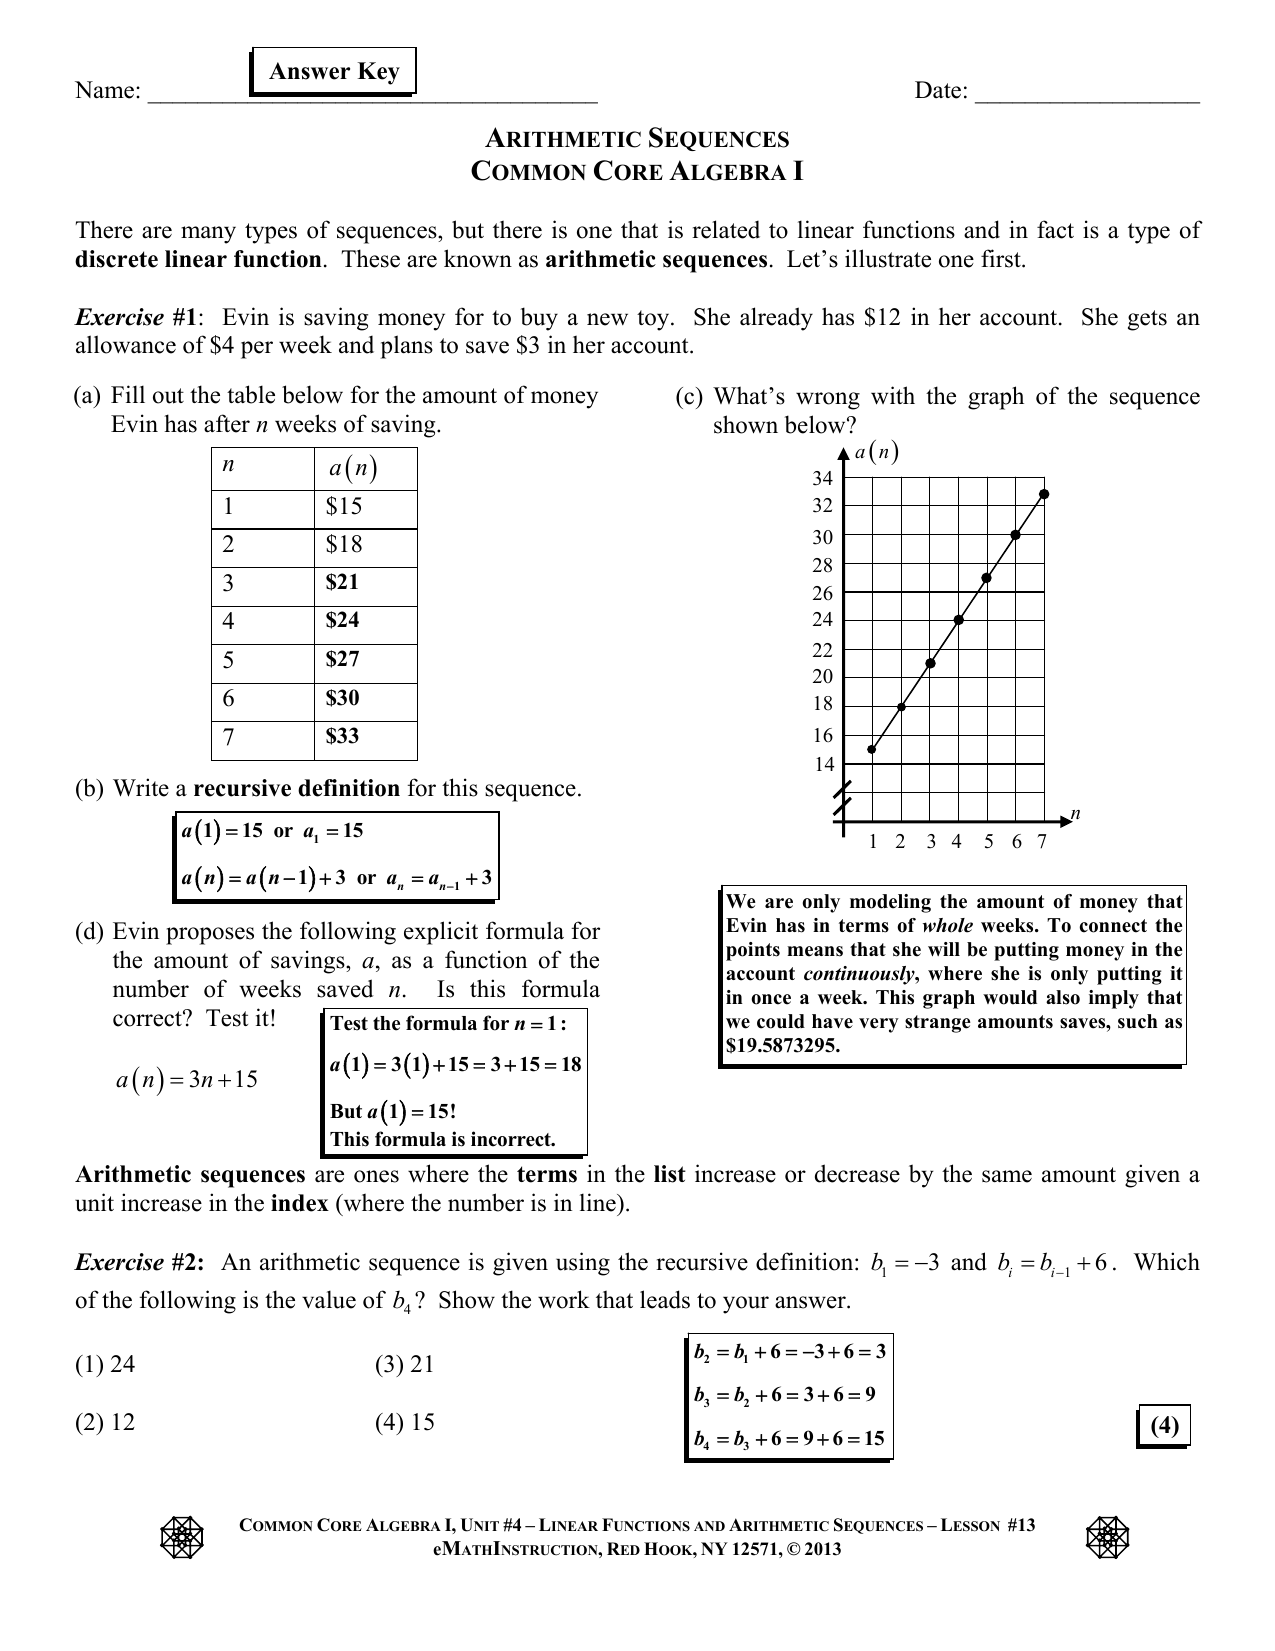 Emathinstruction Algebra 1 Homework Answer Key